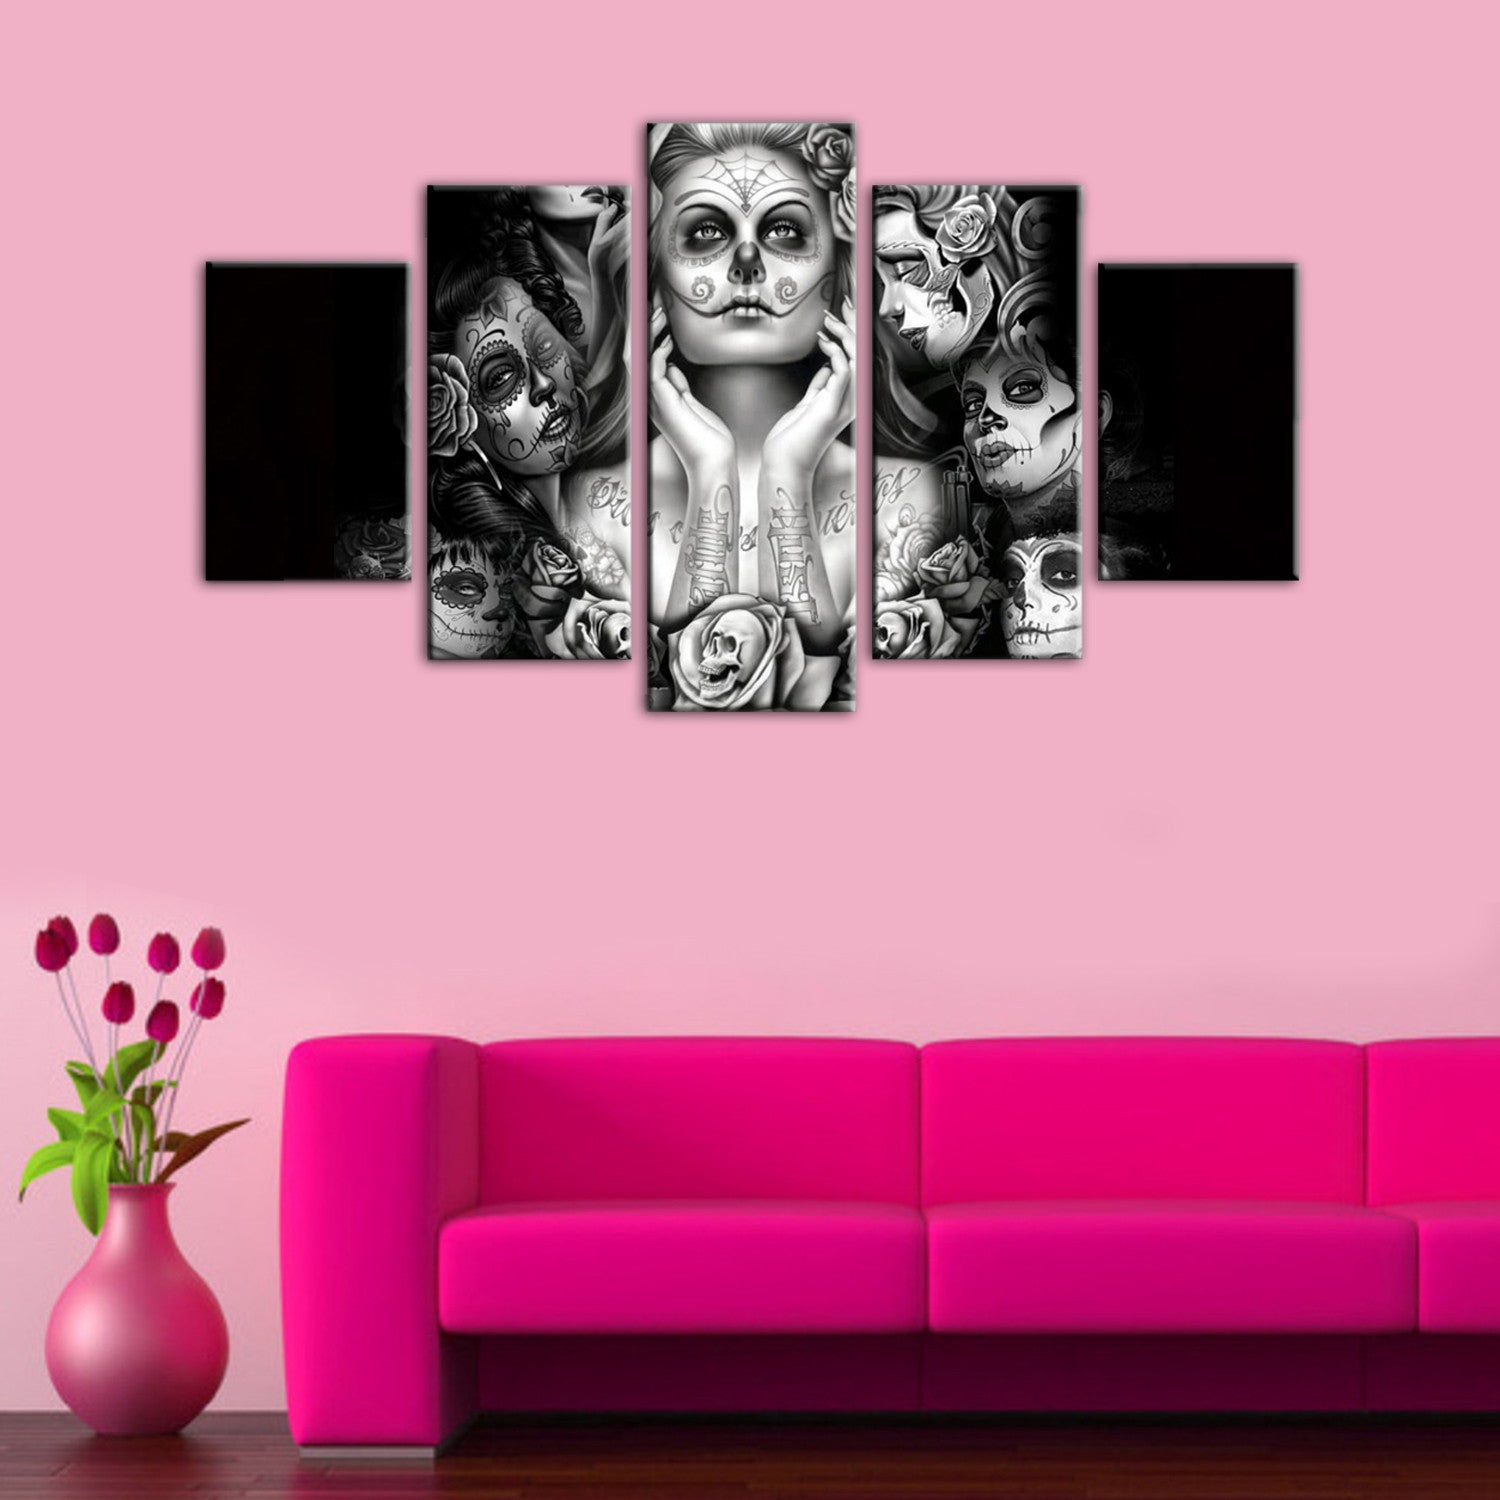 Day Of The Dead Wall Art 5 pieces day of the dead face canvas wall art - hd quality